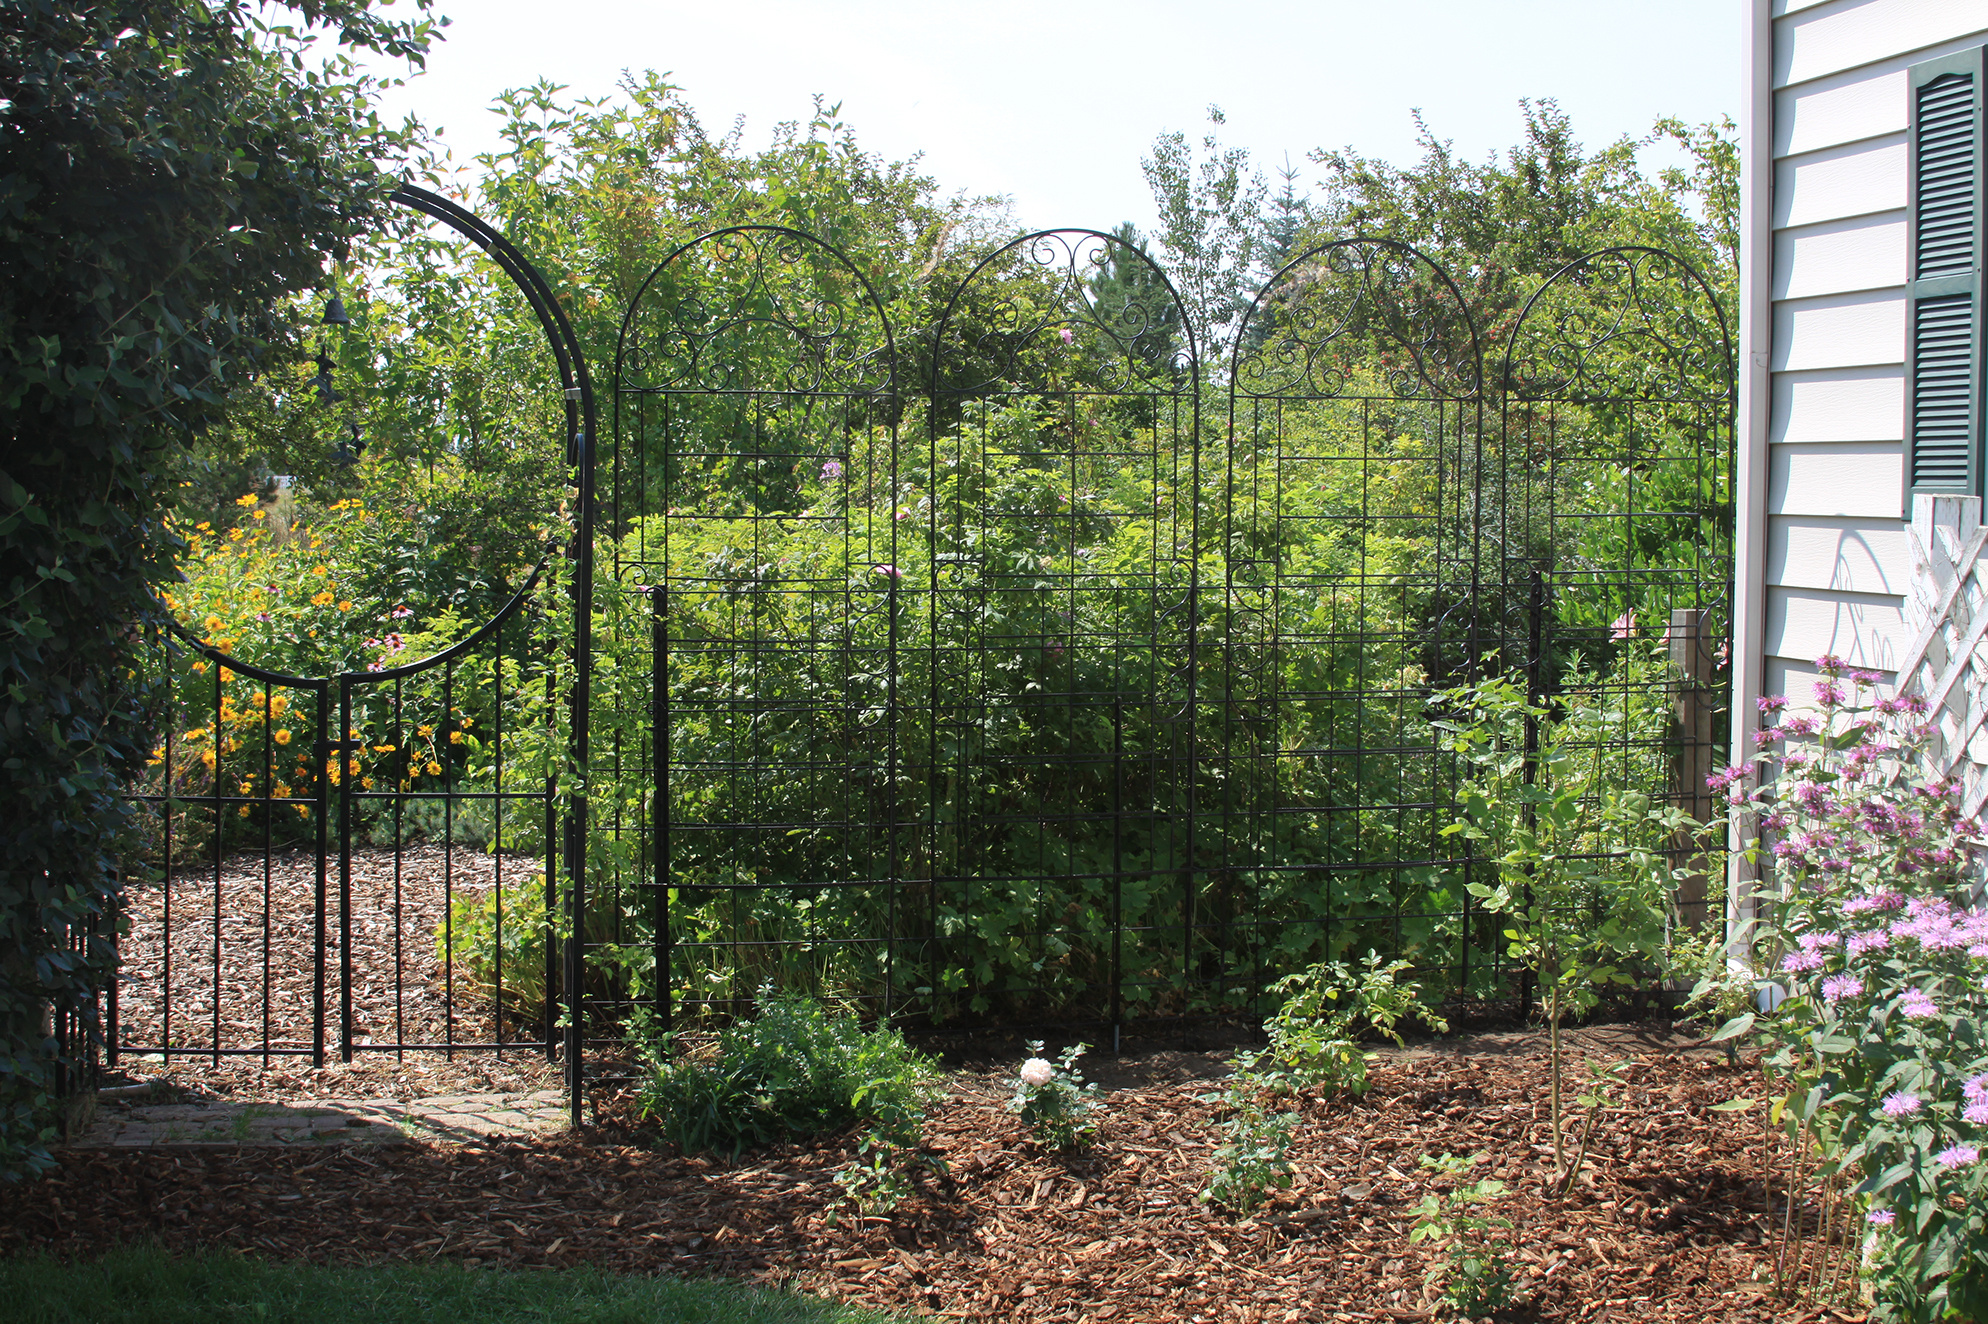 These Trellises Create An Attractive Entrance To The Garden While Making It  More Challenging For Deer